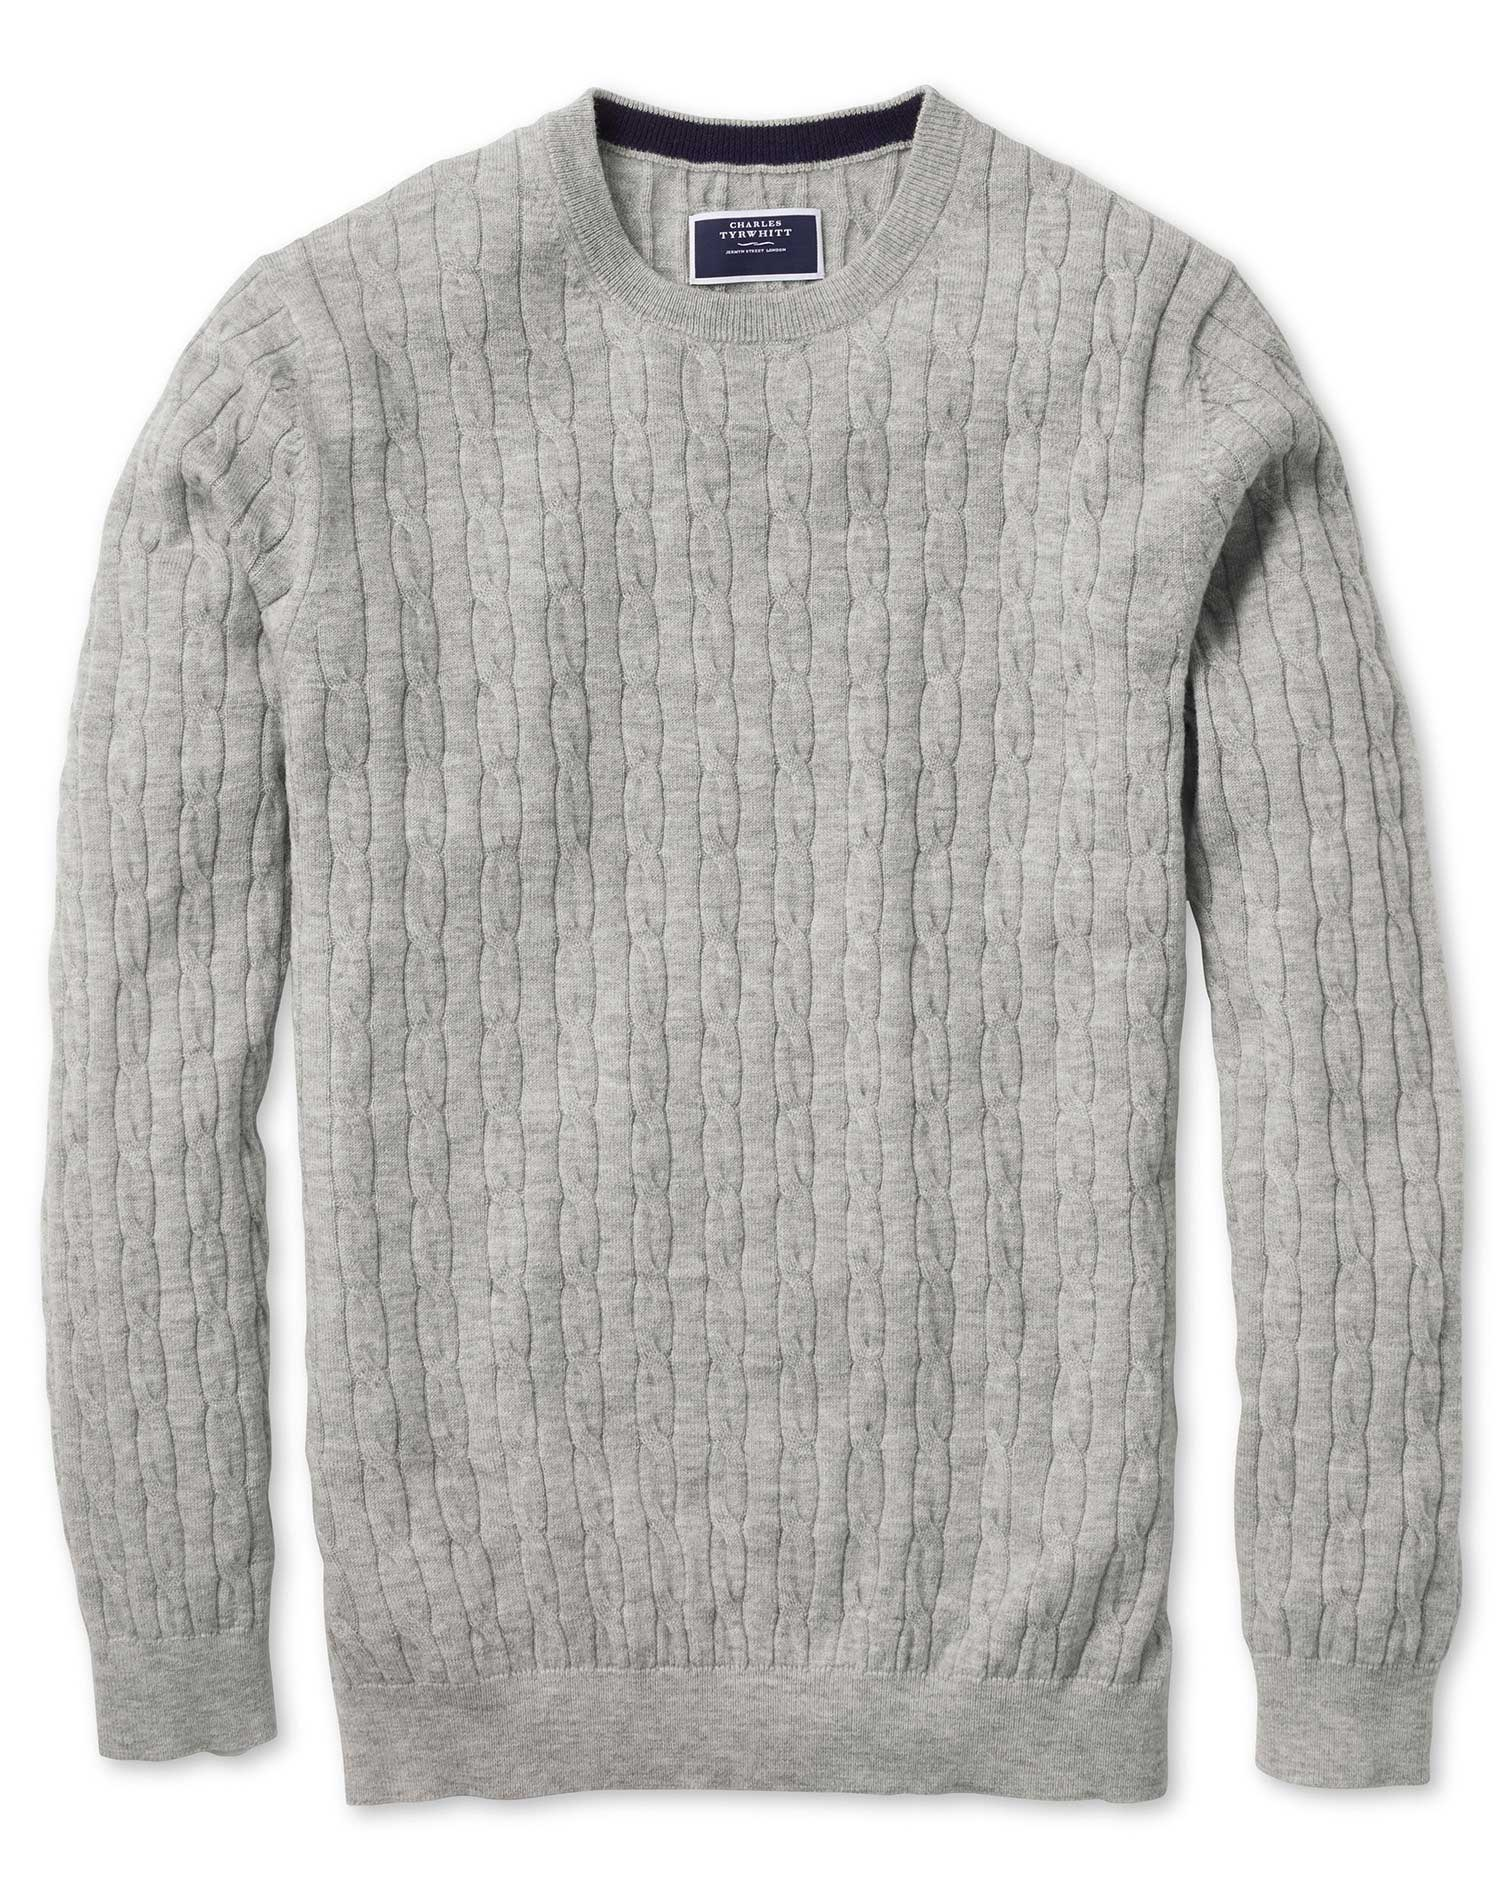 Light Grey Crew Neck Lambswool Cable Knit Jumper Size Medium by Charles Tyrwhitt